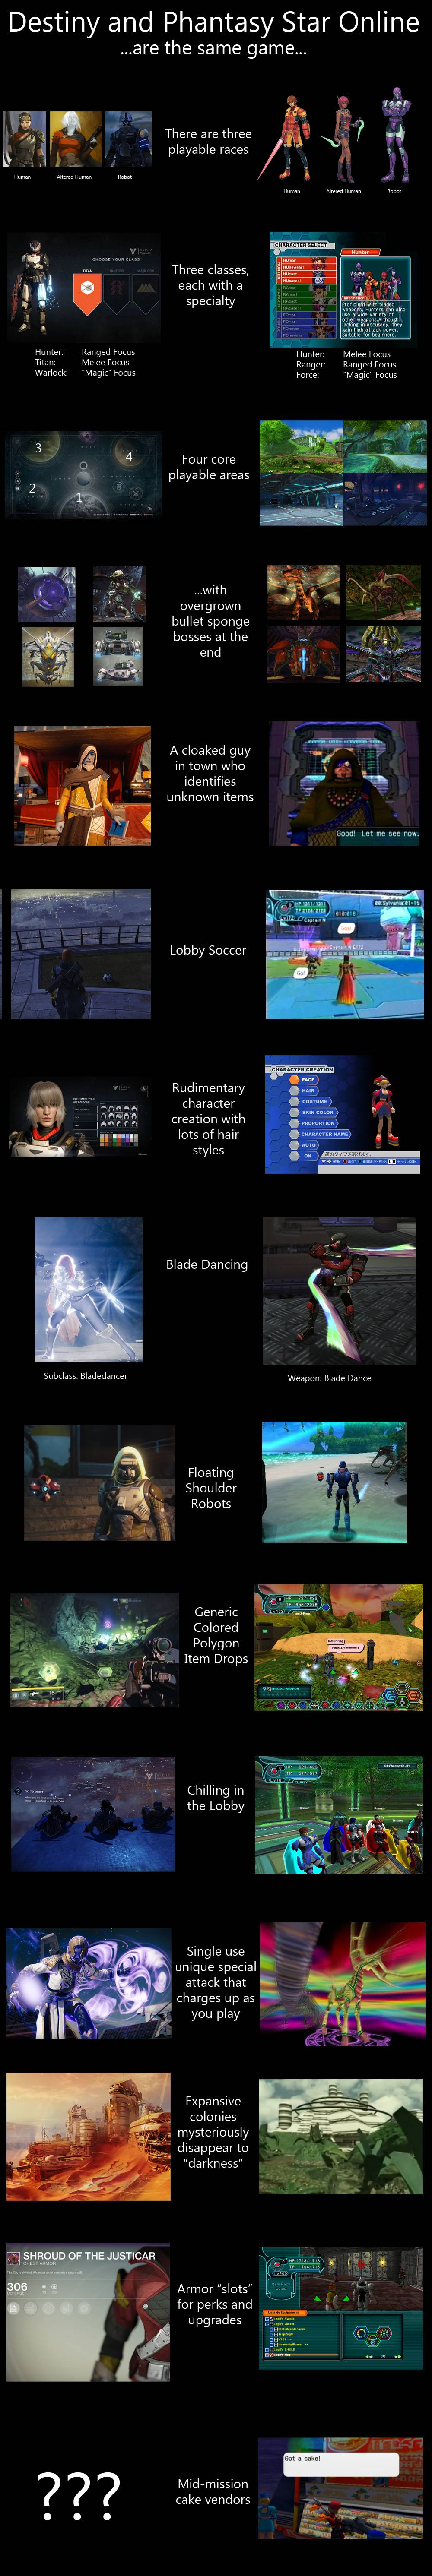 Destiny vs. Phantasy Star Online